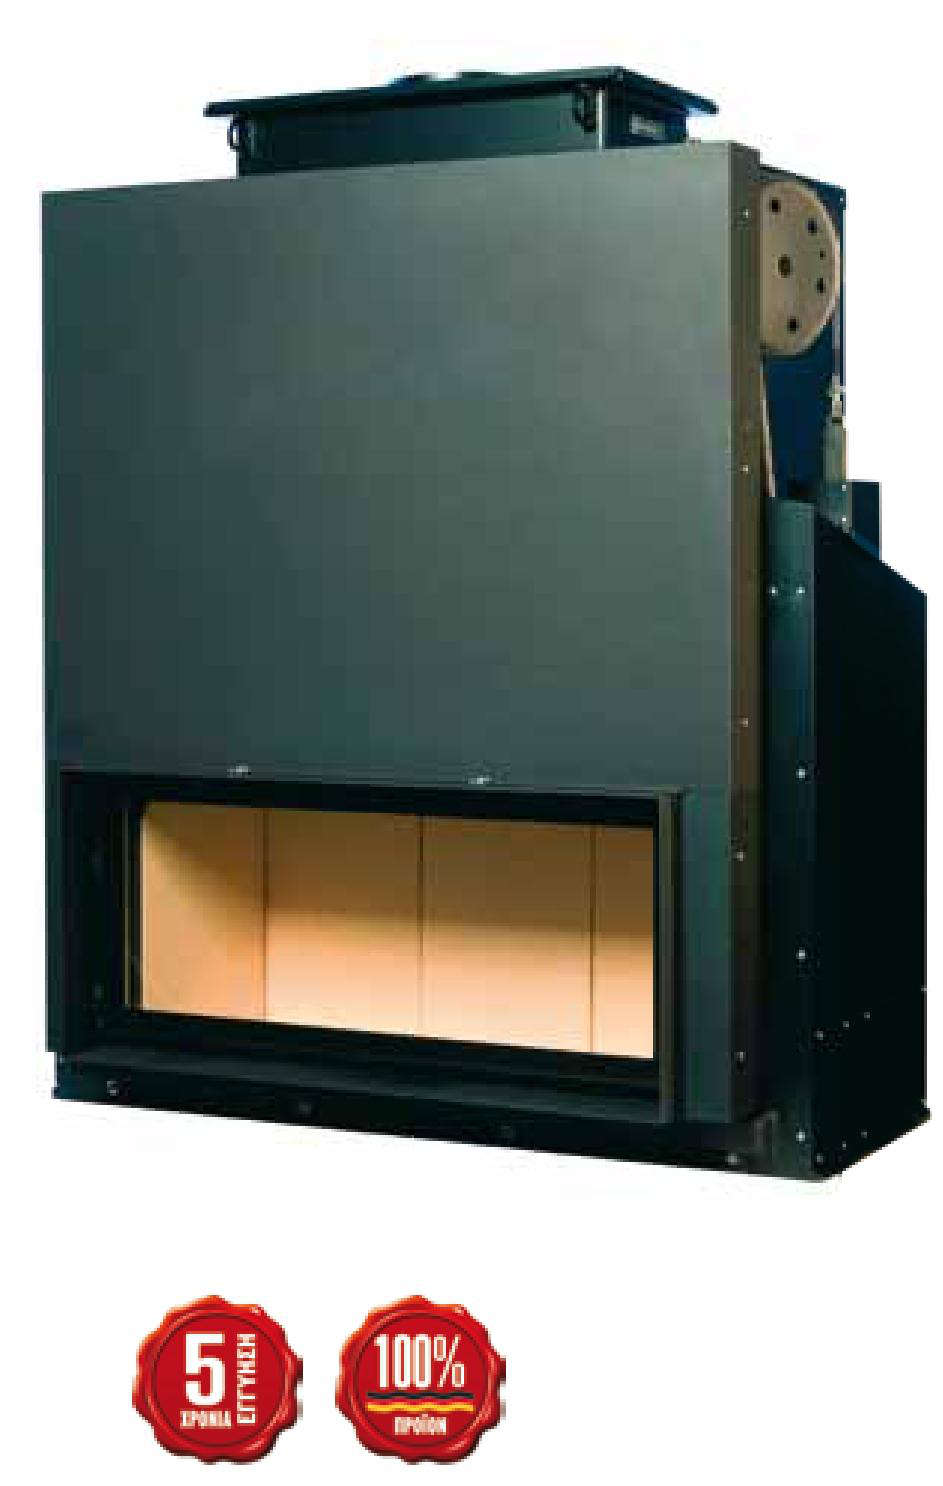 Brunner Kamin Kessel Brunner Company Steel Energy Efficient Fireplaces Heating System